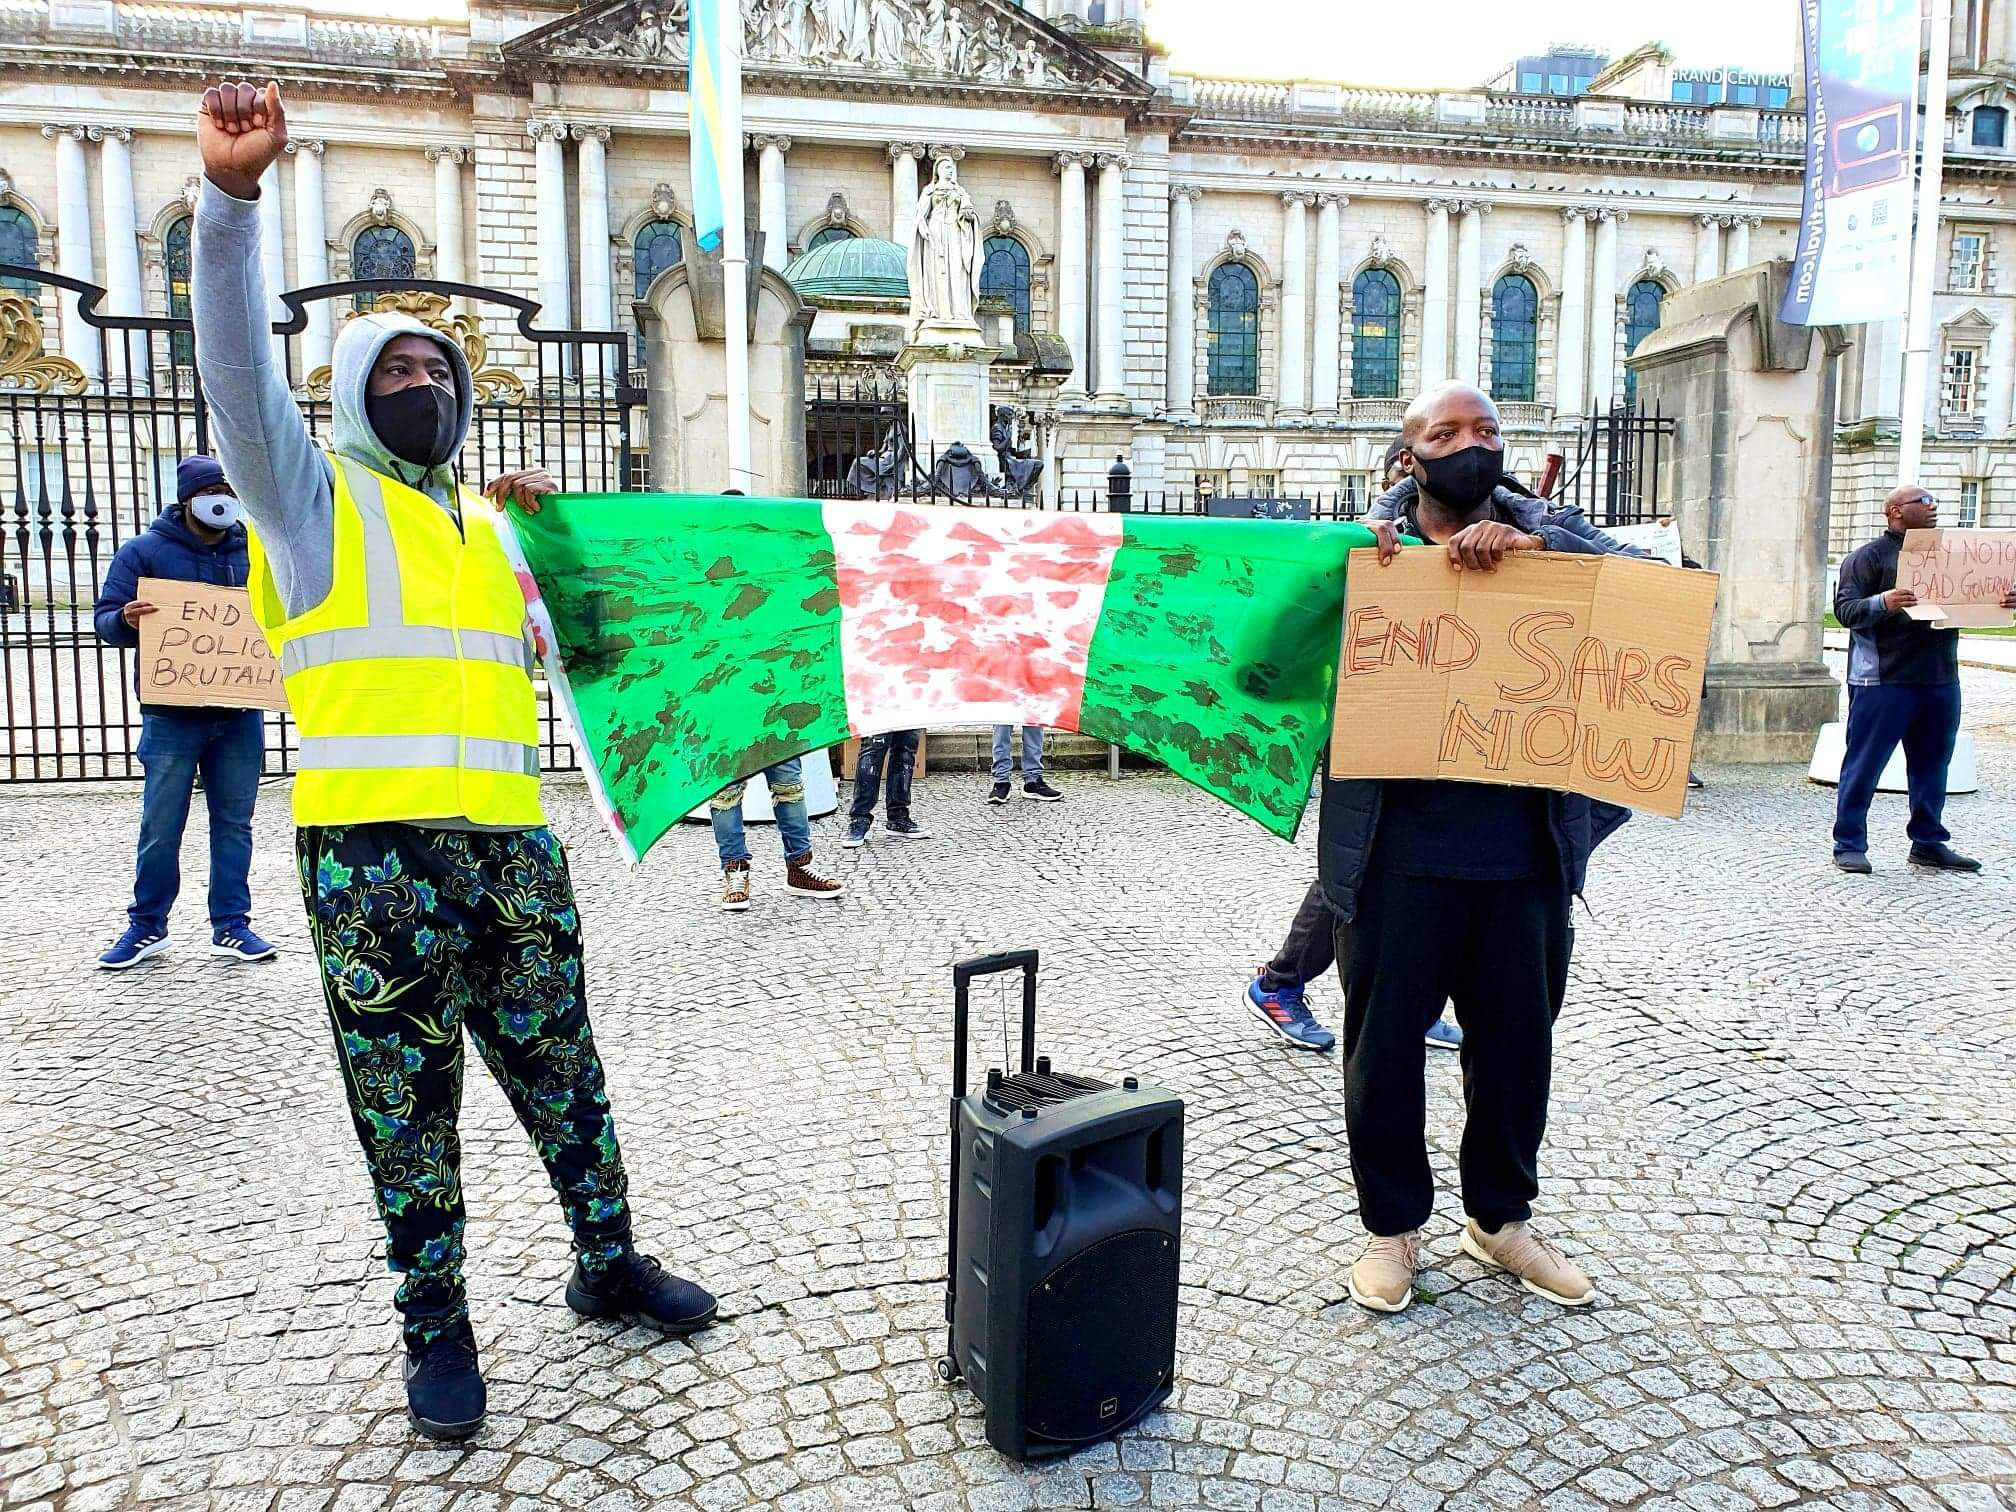 SOLIDARITY: Protesters gather at City Hall to raise their voices against brutal state crackdown on defenceless demonstrators in the Nigerian capital Lagos